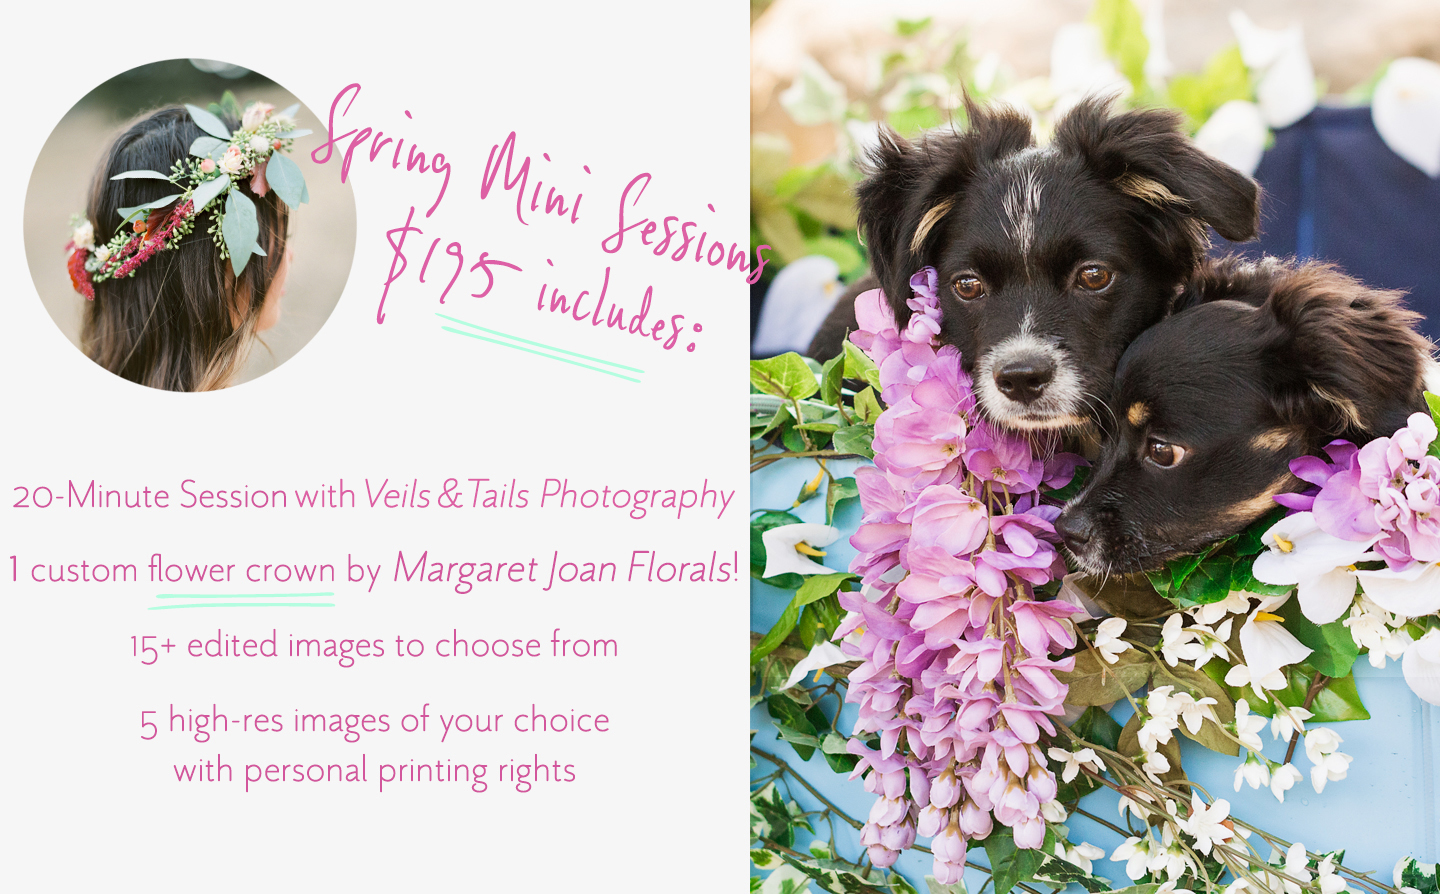 Santa Barbara Spring Mini Photo Sessions - Pet Sessions, Family Sessions or Couples Sessions, including a flower crown or floral collar from Margaret Joan Florals!